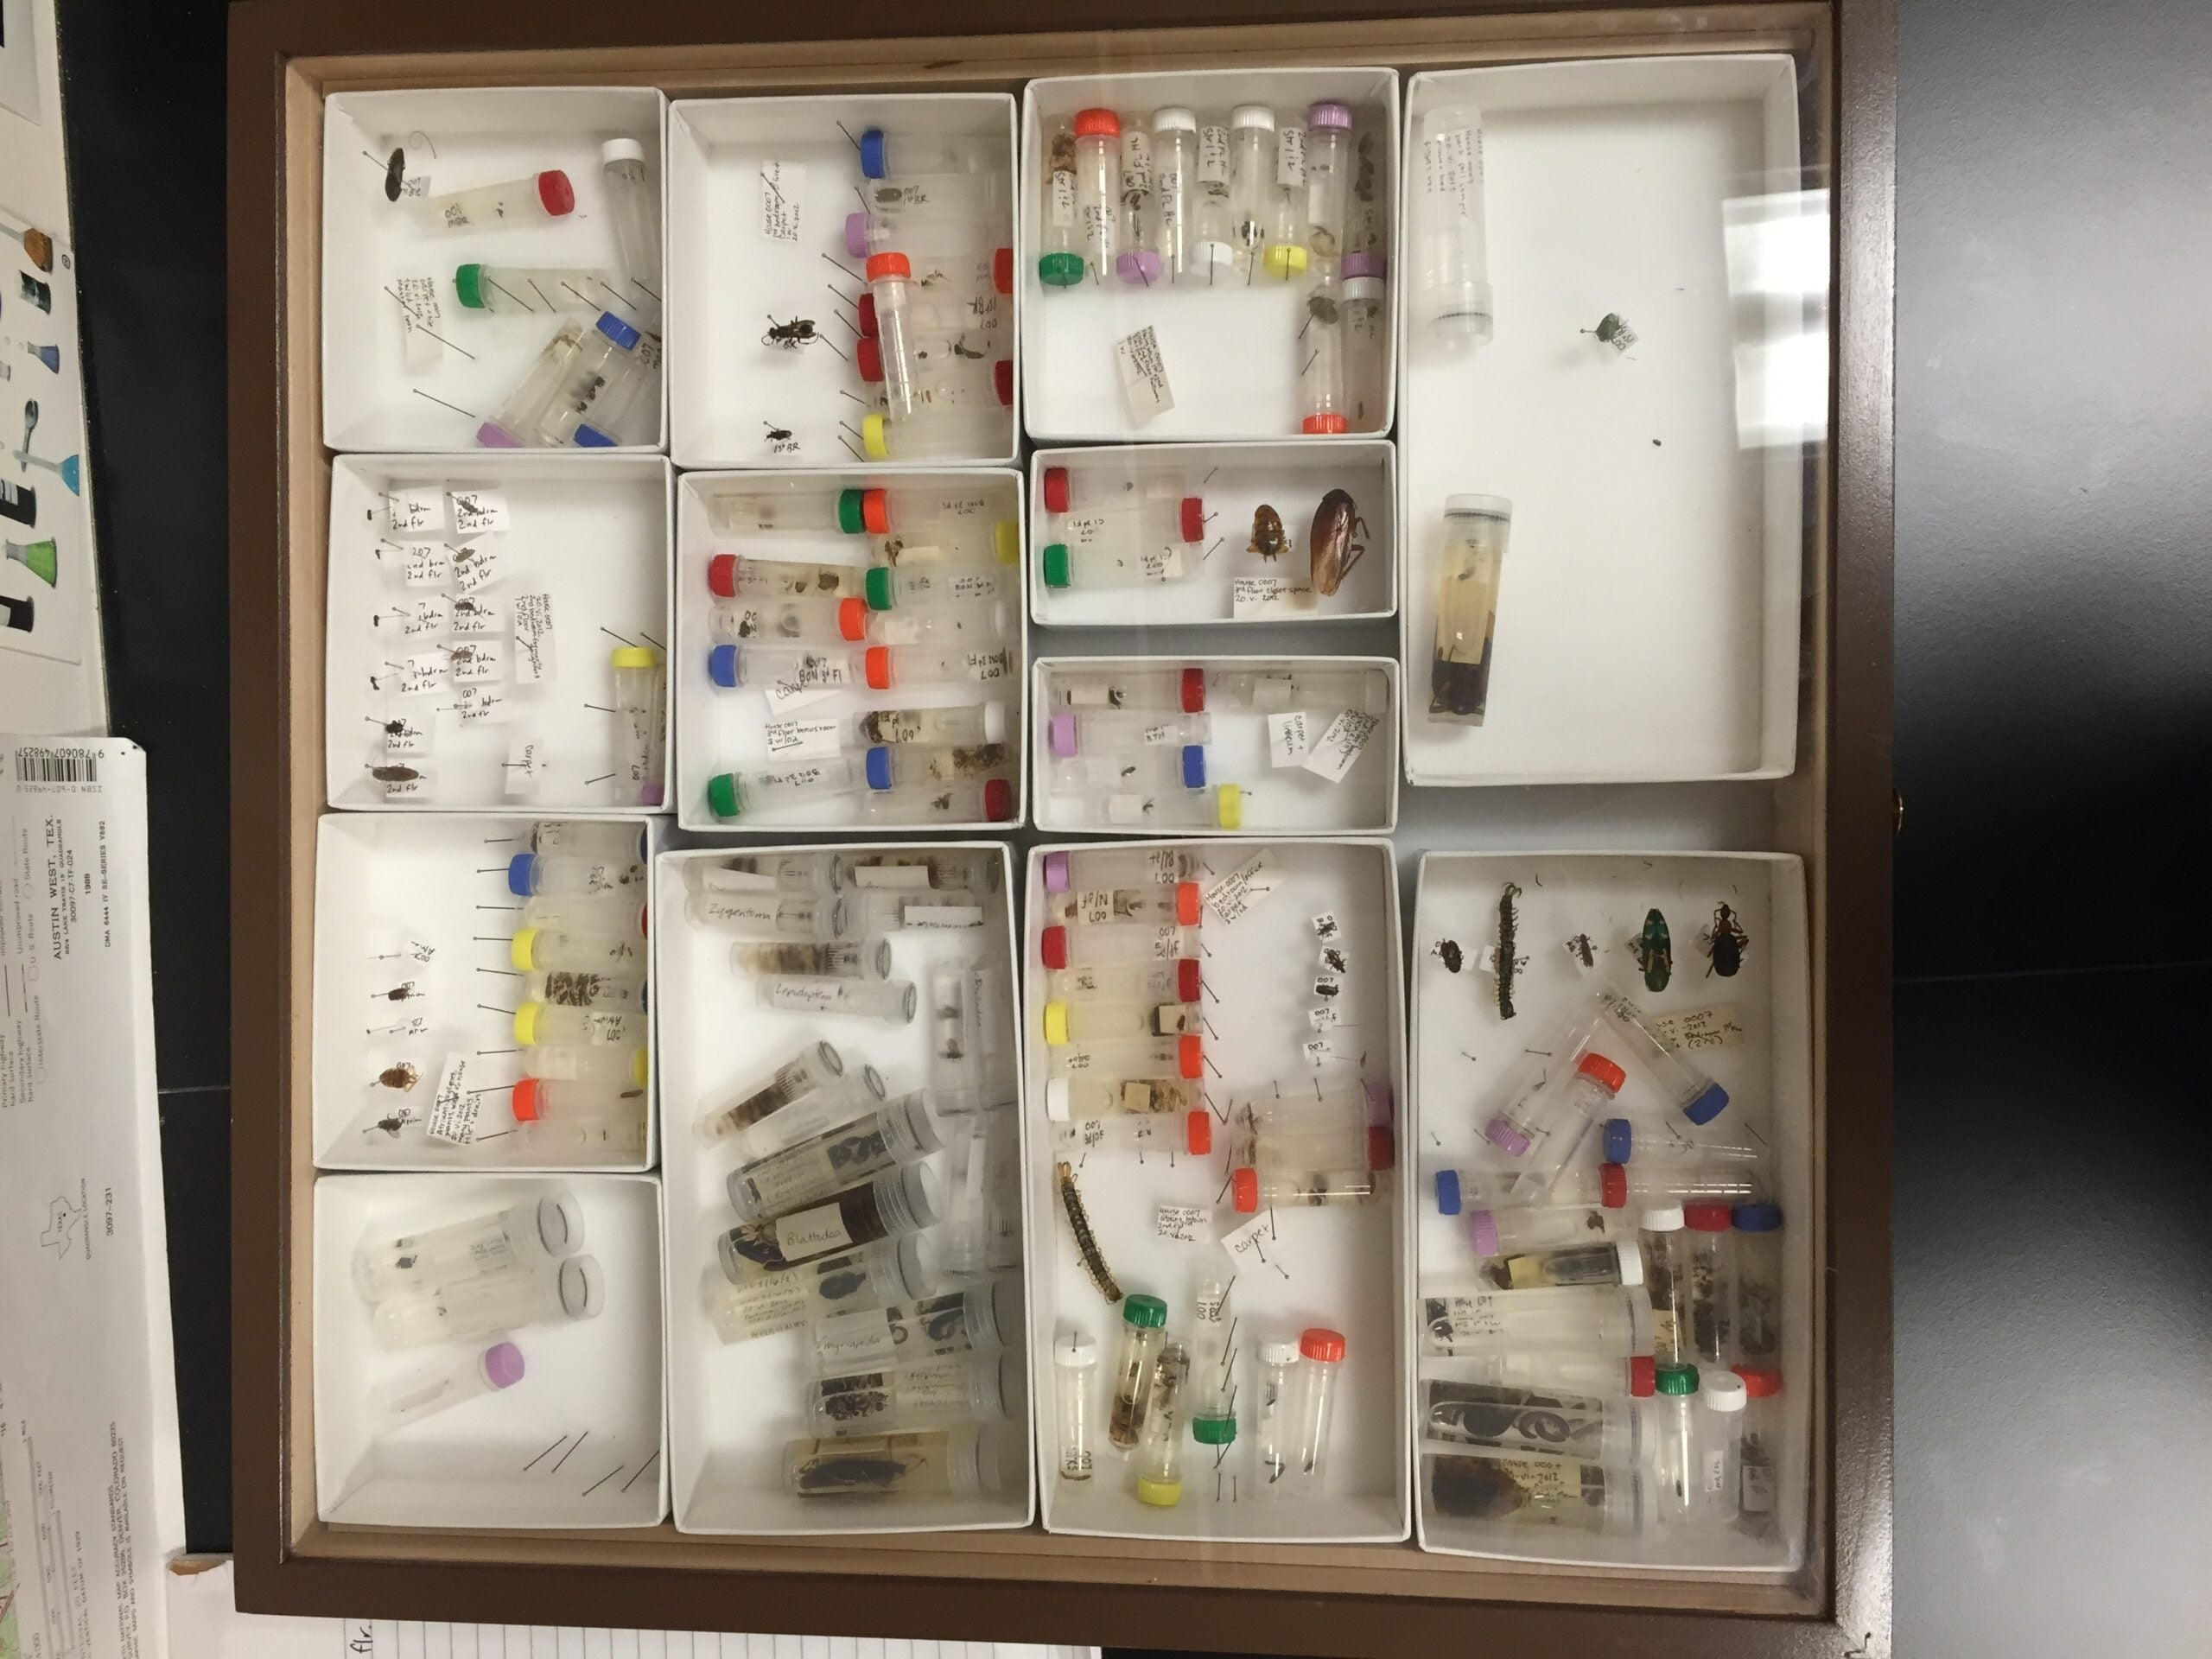 Coming Soon: 7 Continents Worth Of Household Bugs And Microbes